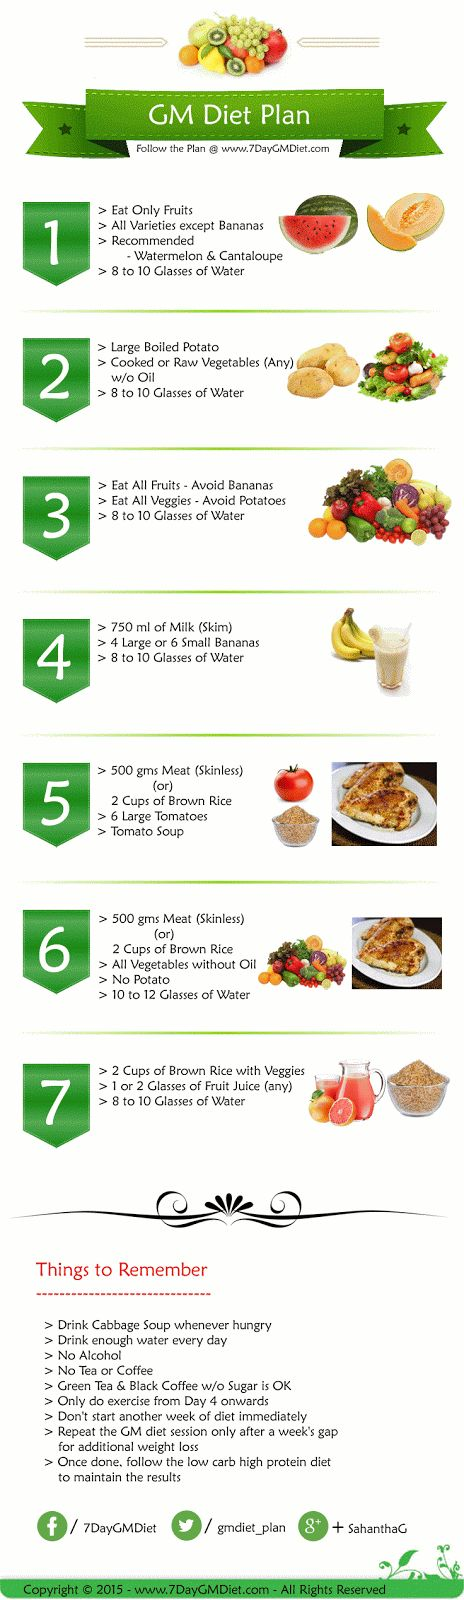 Gm diet chart find the gm diet plan pdf printable version free gm diet chart find the gm diet plan pdf printable version free download general motors diet aka gm diet chart helps you lose weight without exer forumfinder Image collections